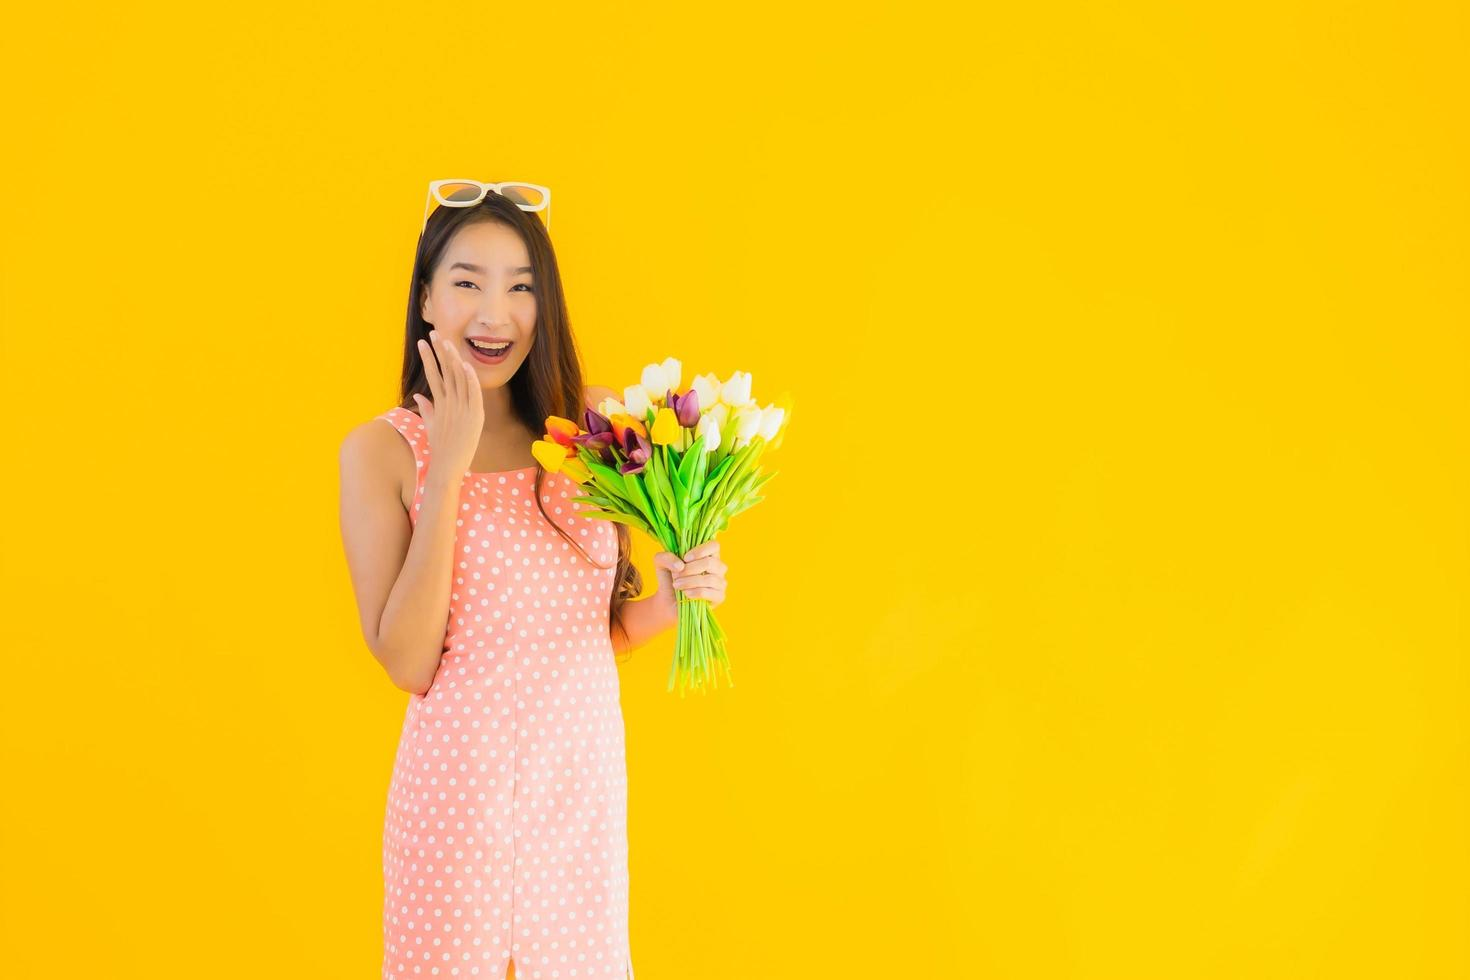 Woman holding bouquet of flowers photo